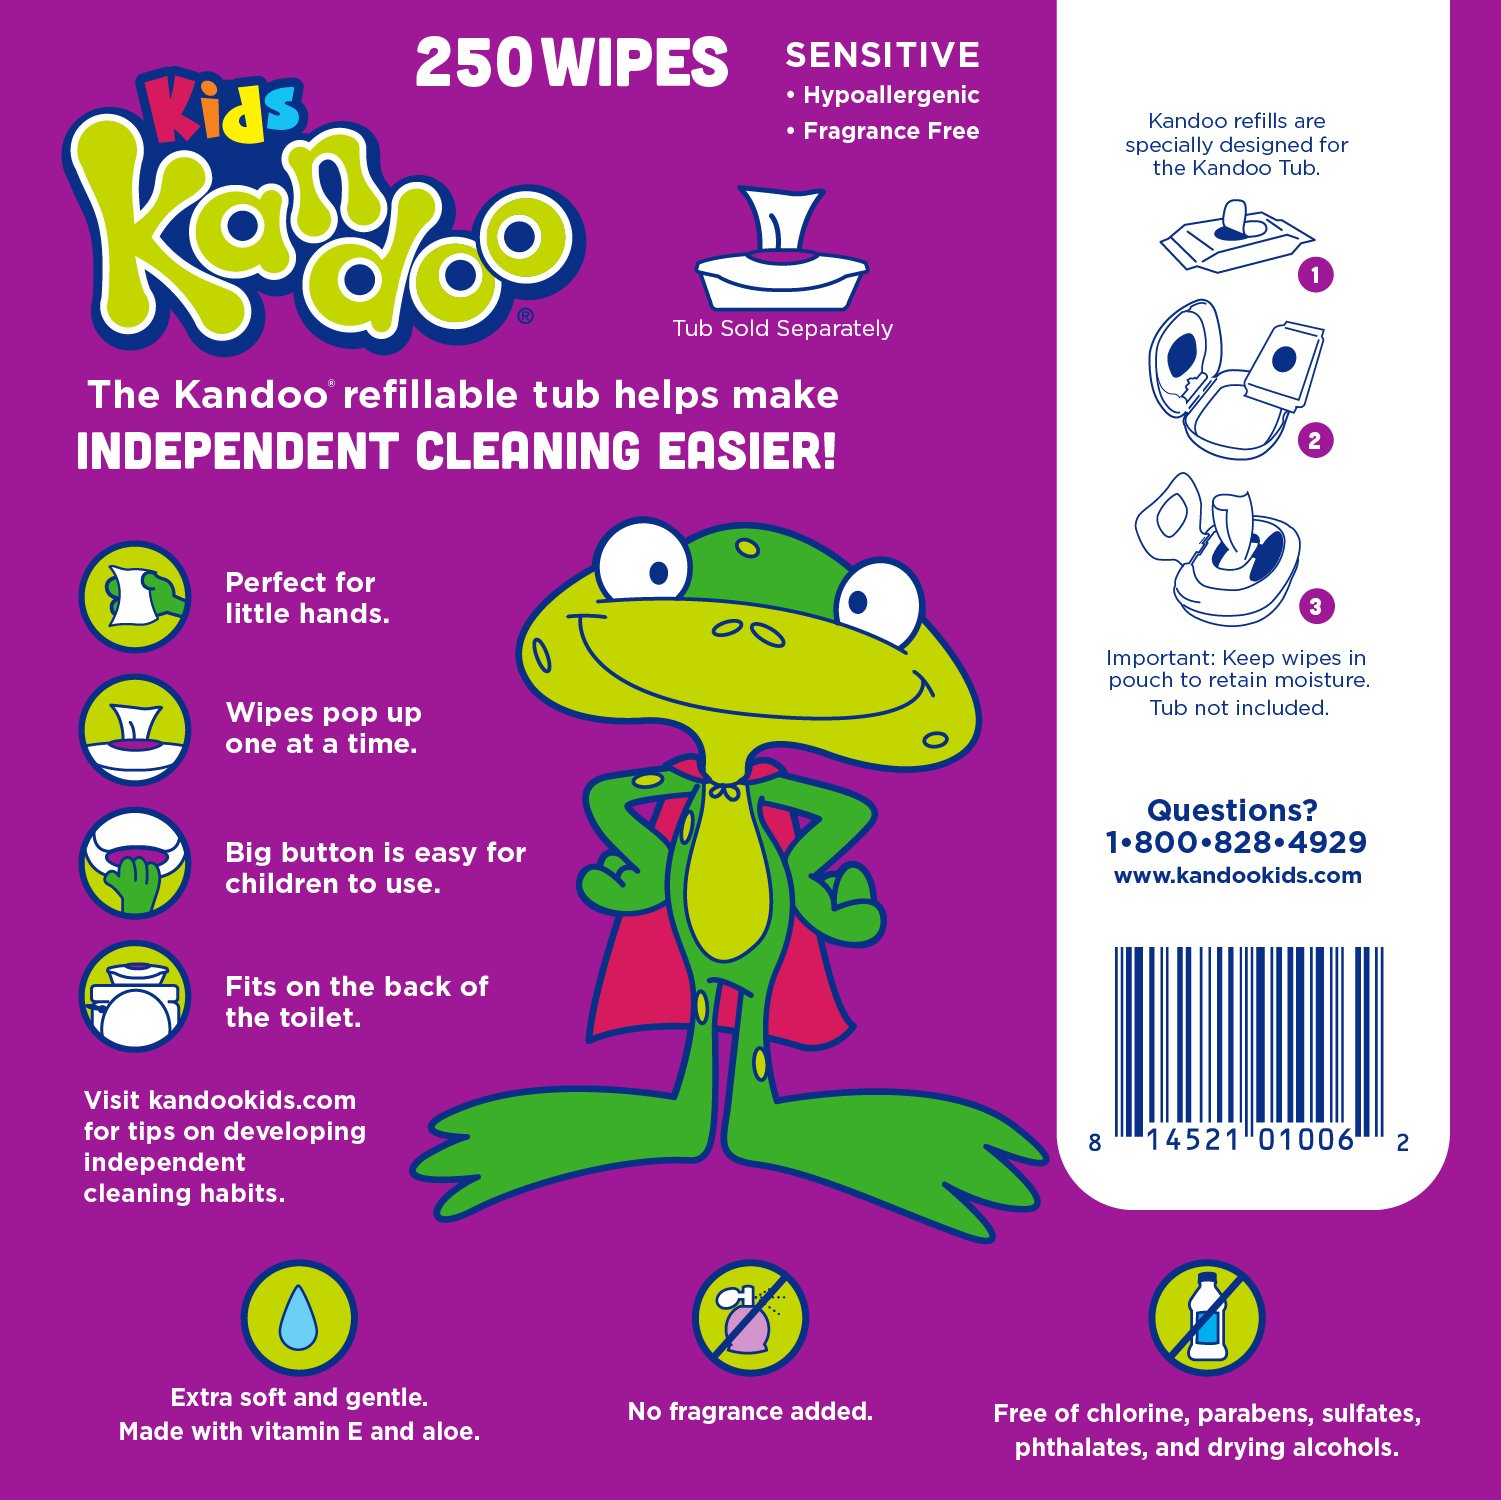 Flushable Baby Wipes for Kids, Sensitive by Kandoo, Hypoallergenic Potty Training Wet Cleansing Cloths Refills, Unscented, 250 Count per Pack, Pack of 4 by Kandoo (Image #3)